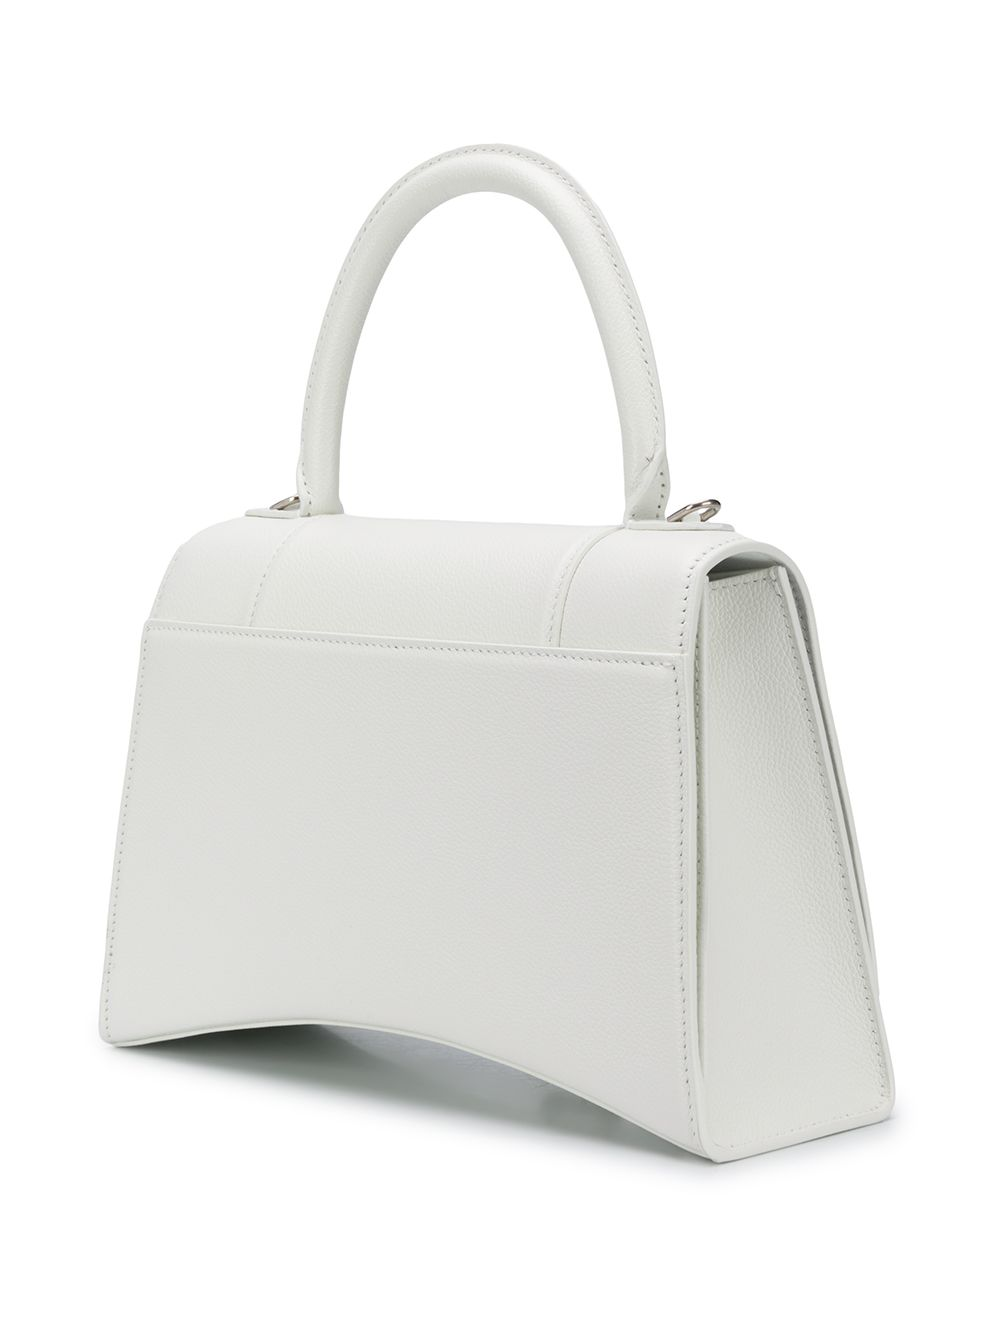 Picture of Balenciaga | Hourglass M New Top Handle